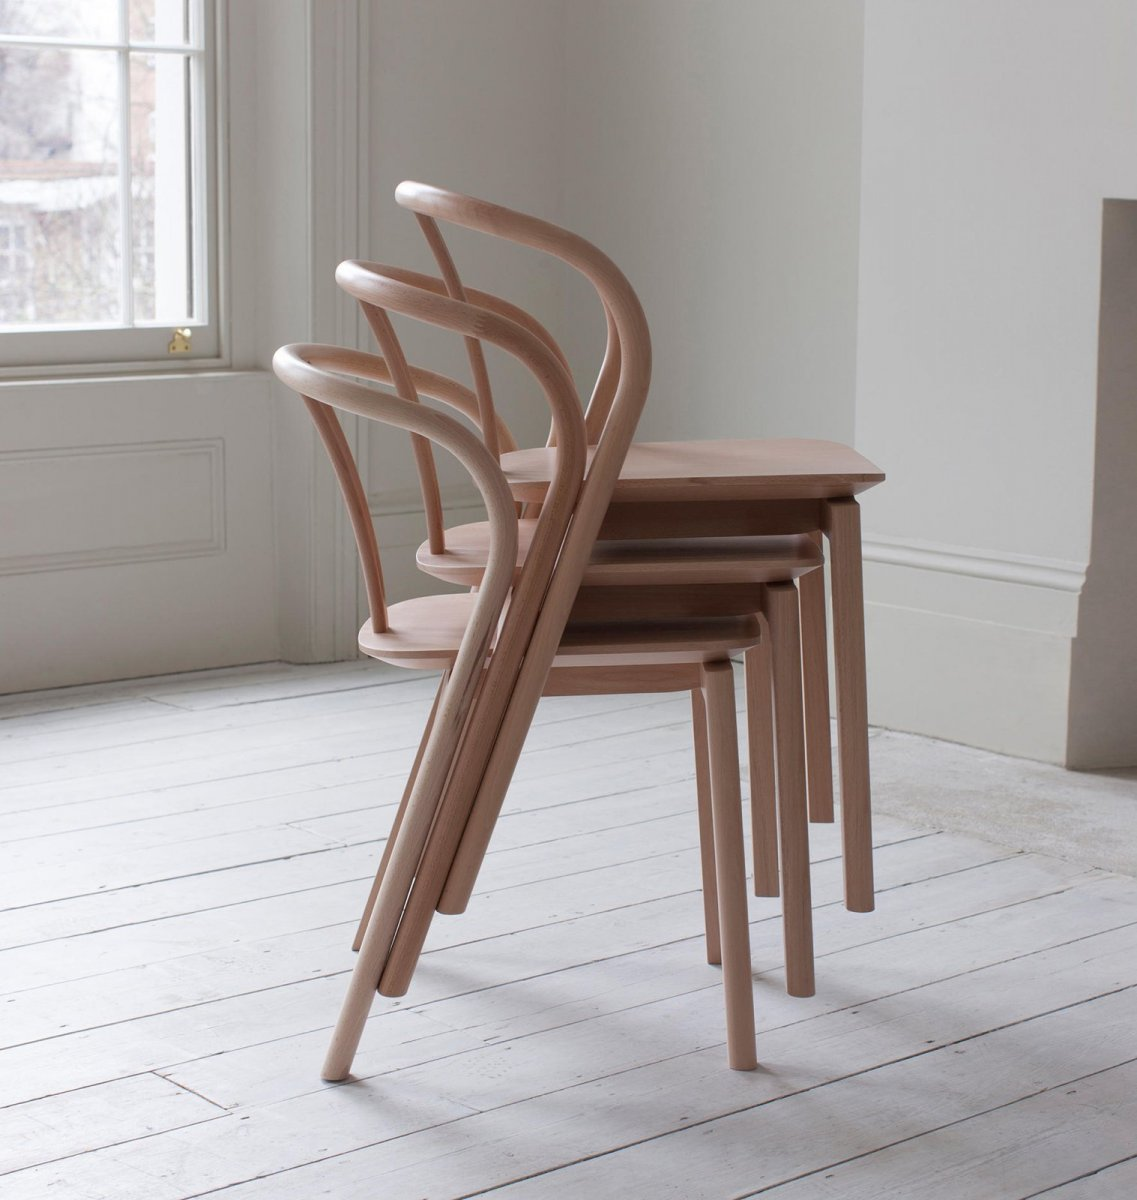 chair design studio cafe style wooden chairs flow by tna for ercol up interiors